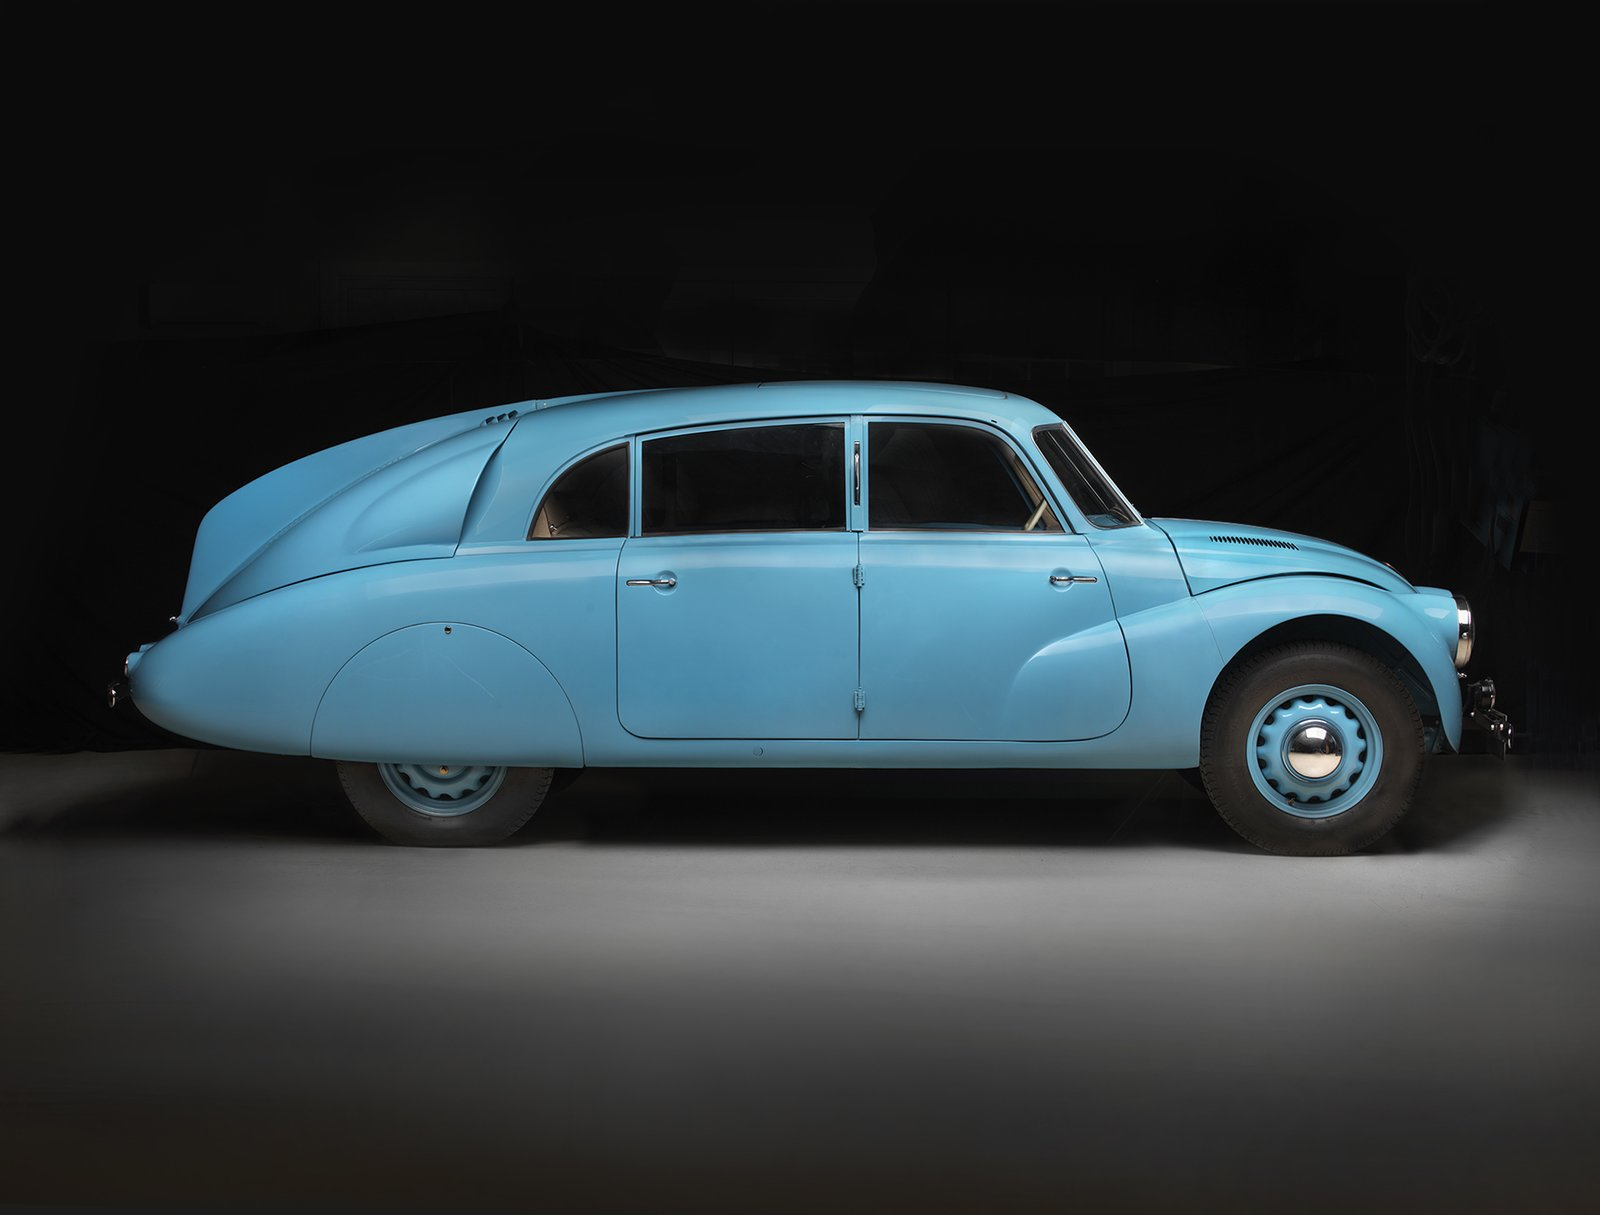 1940 Tatra T87, Collection of Chris Ohrstrom  Photo 7 of 15 in Examining the Architecture of the Art Deco Automobile